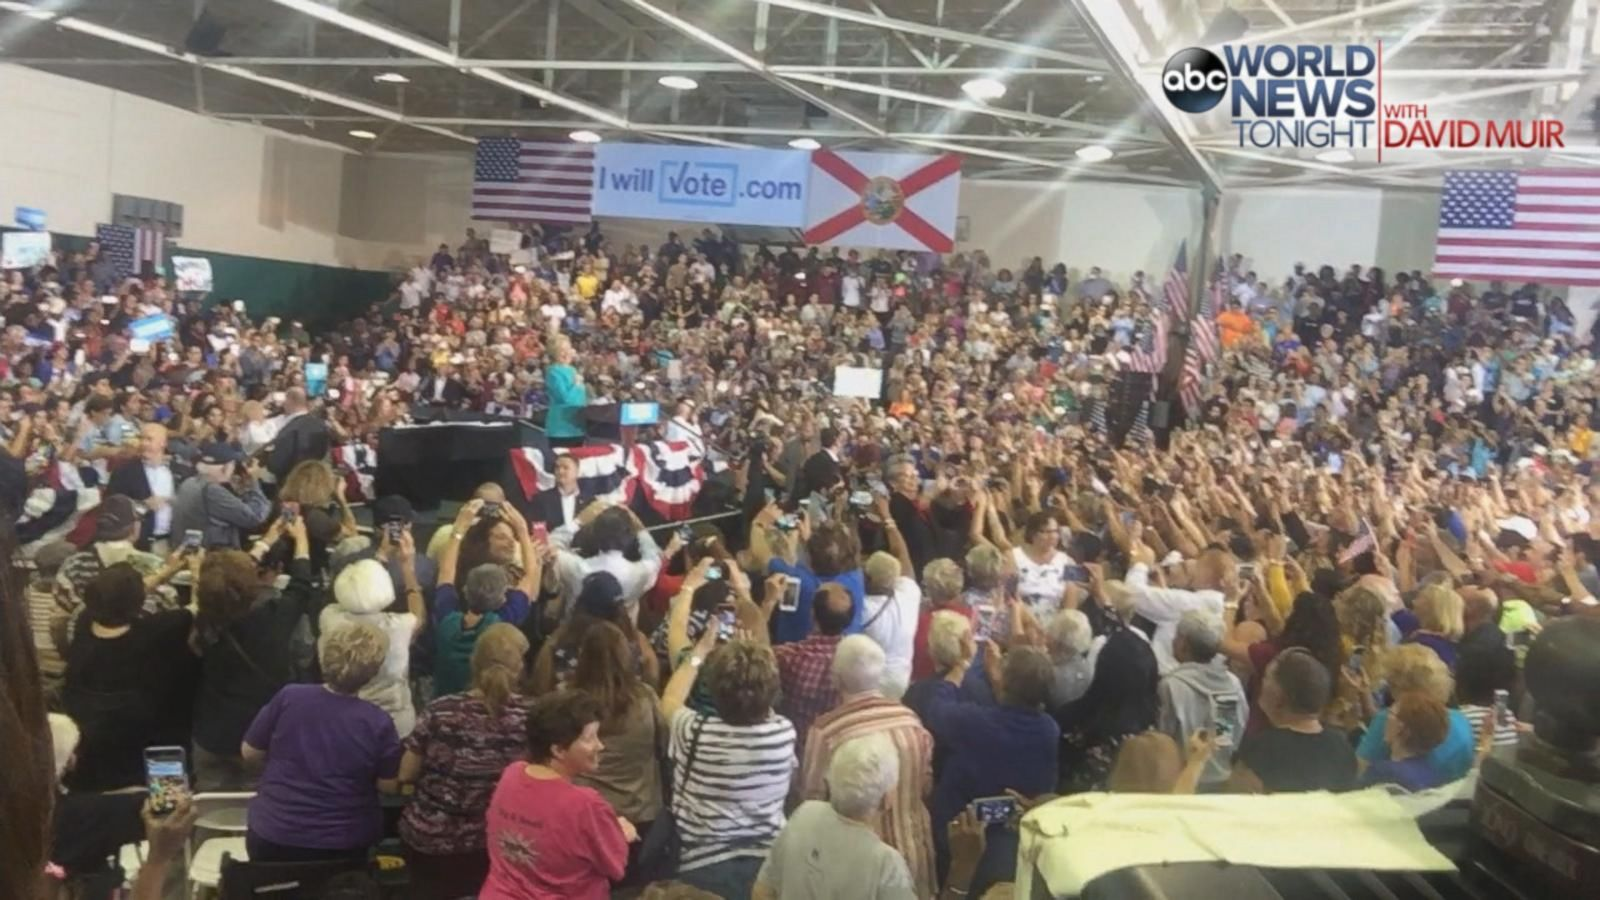 VIDEO: 2016 - 13 Days: Crowd Serenades Clinton with 'Happy Birthday Song' at FL Rally